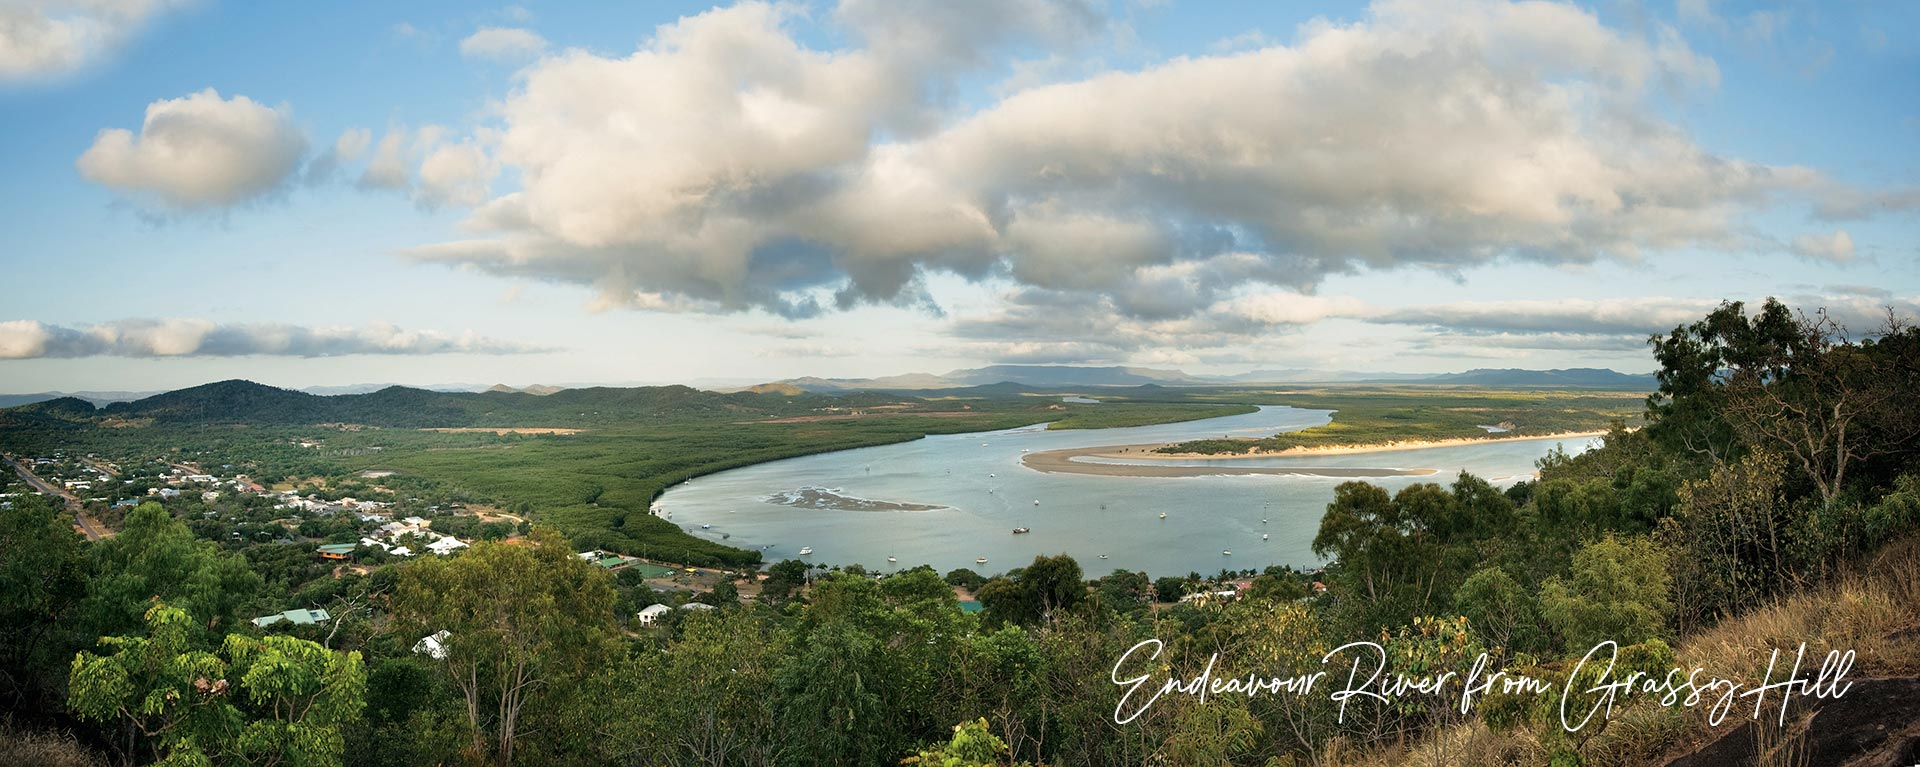 Endeavour River from Grassy Hill, Cooktown